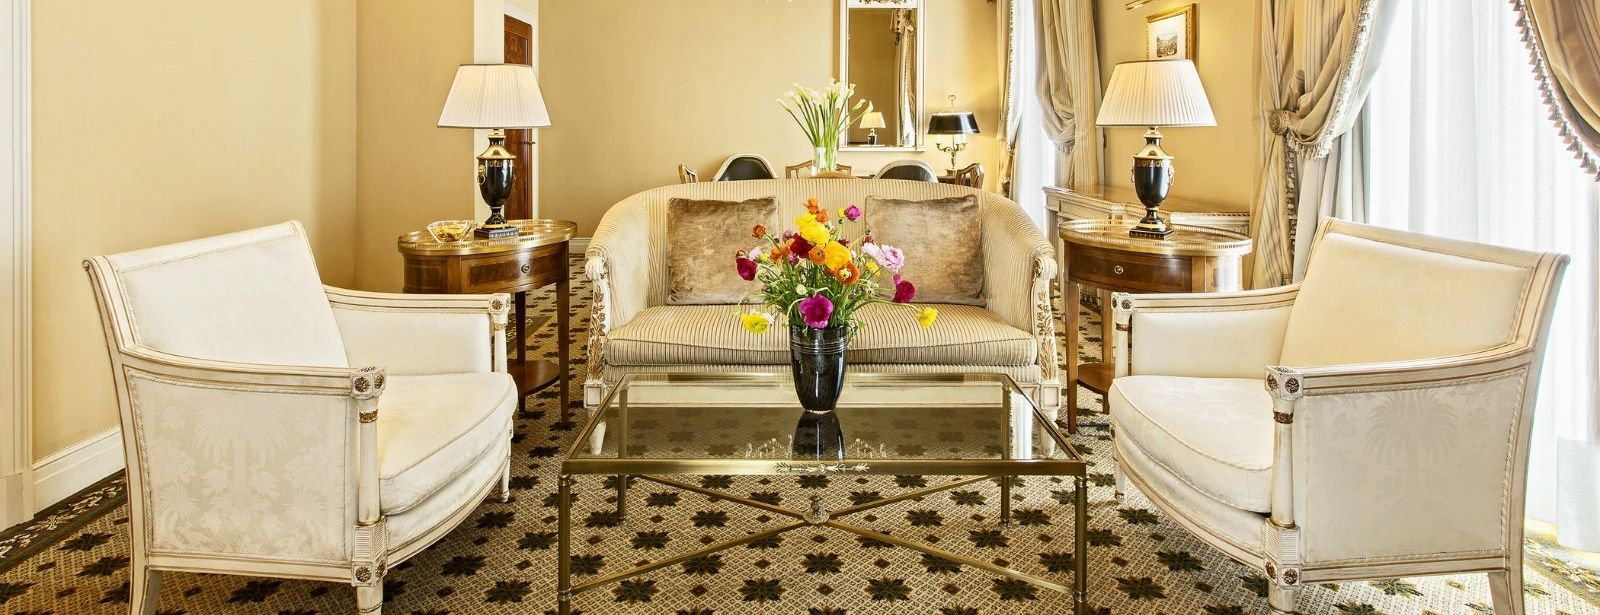 Grand Deluxe Suites at Hotel Grande Bretagne a Luxury Collection Hotel Athens Greece